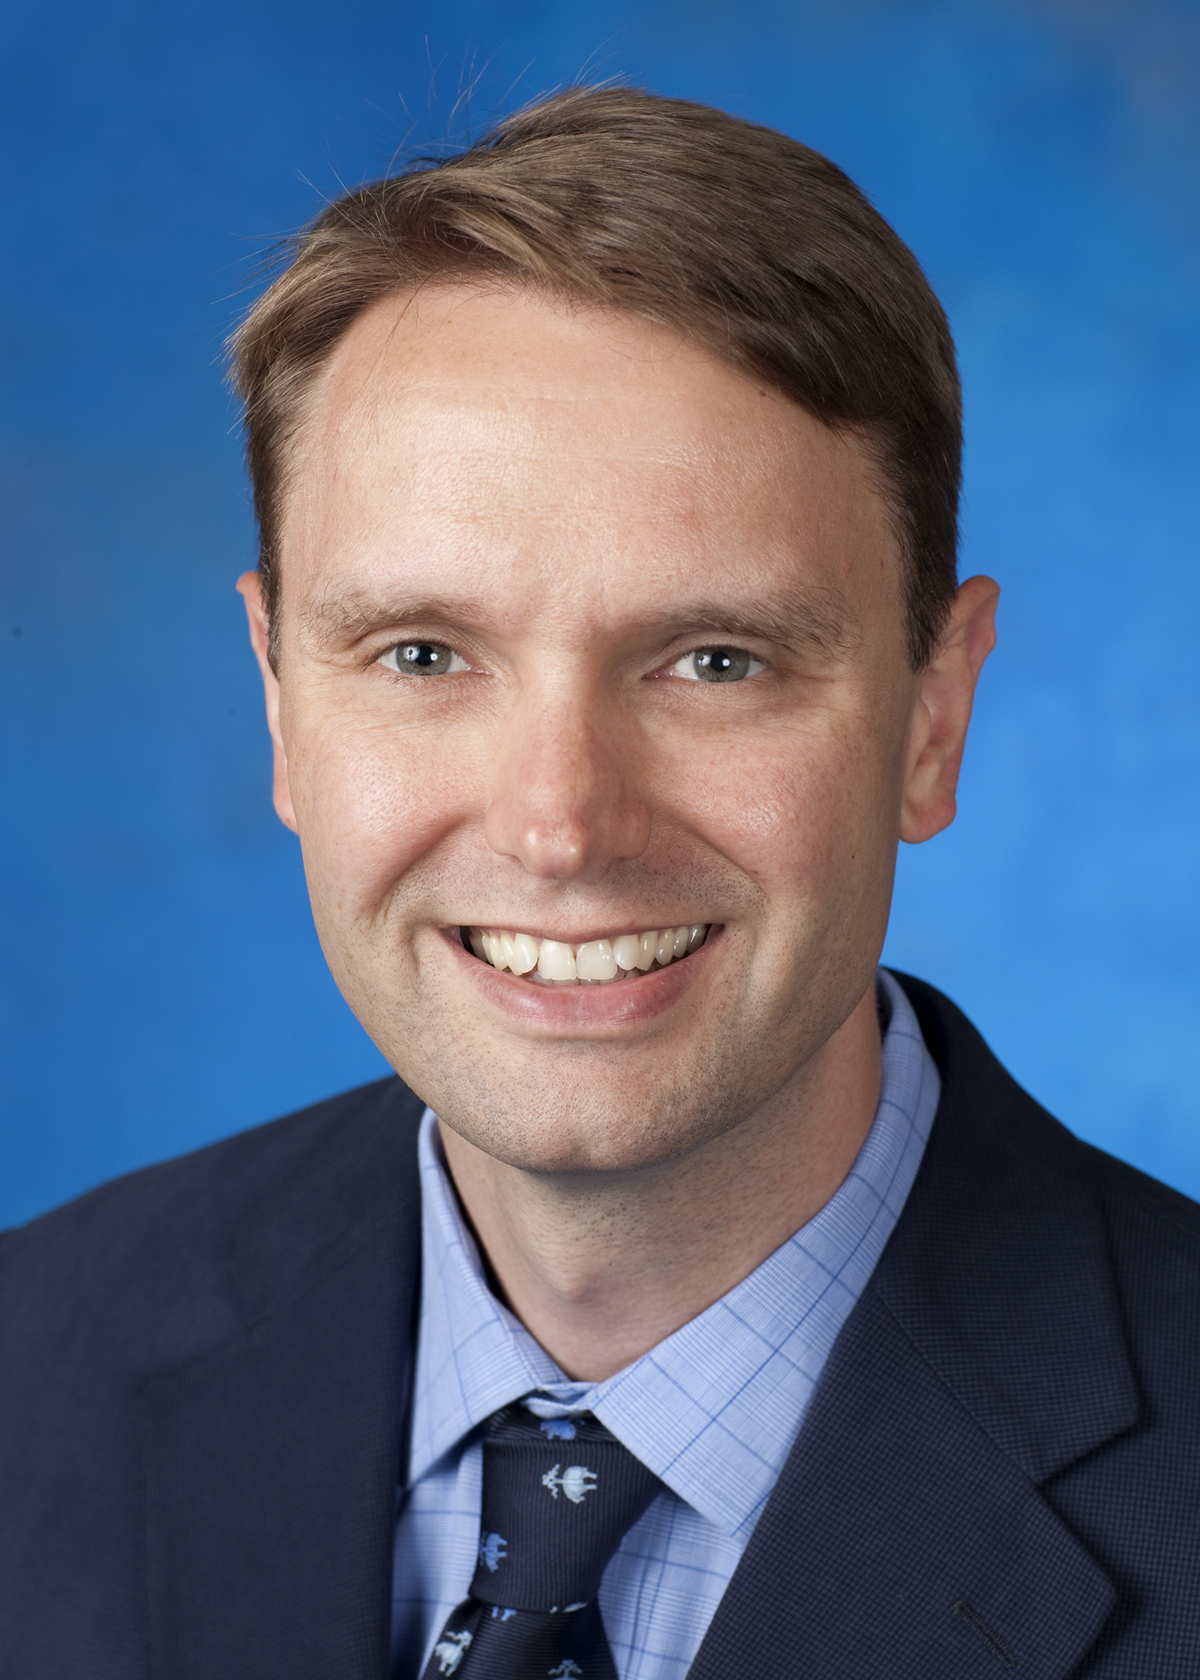 board-certified interventional cardiologist, Todd Justice, MD